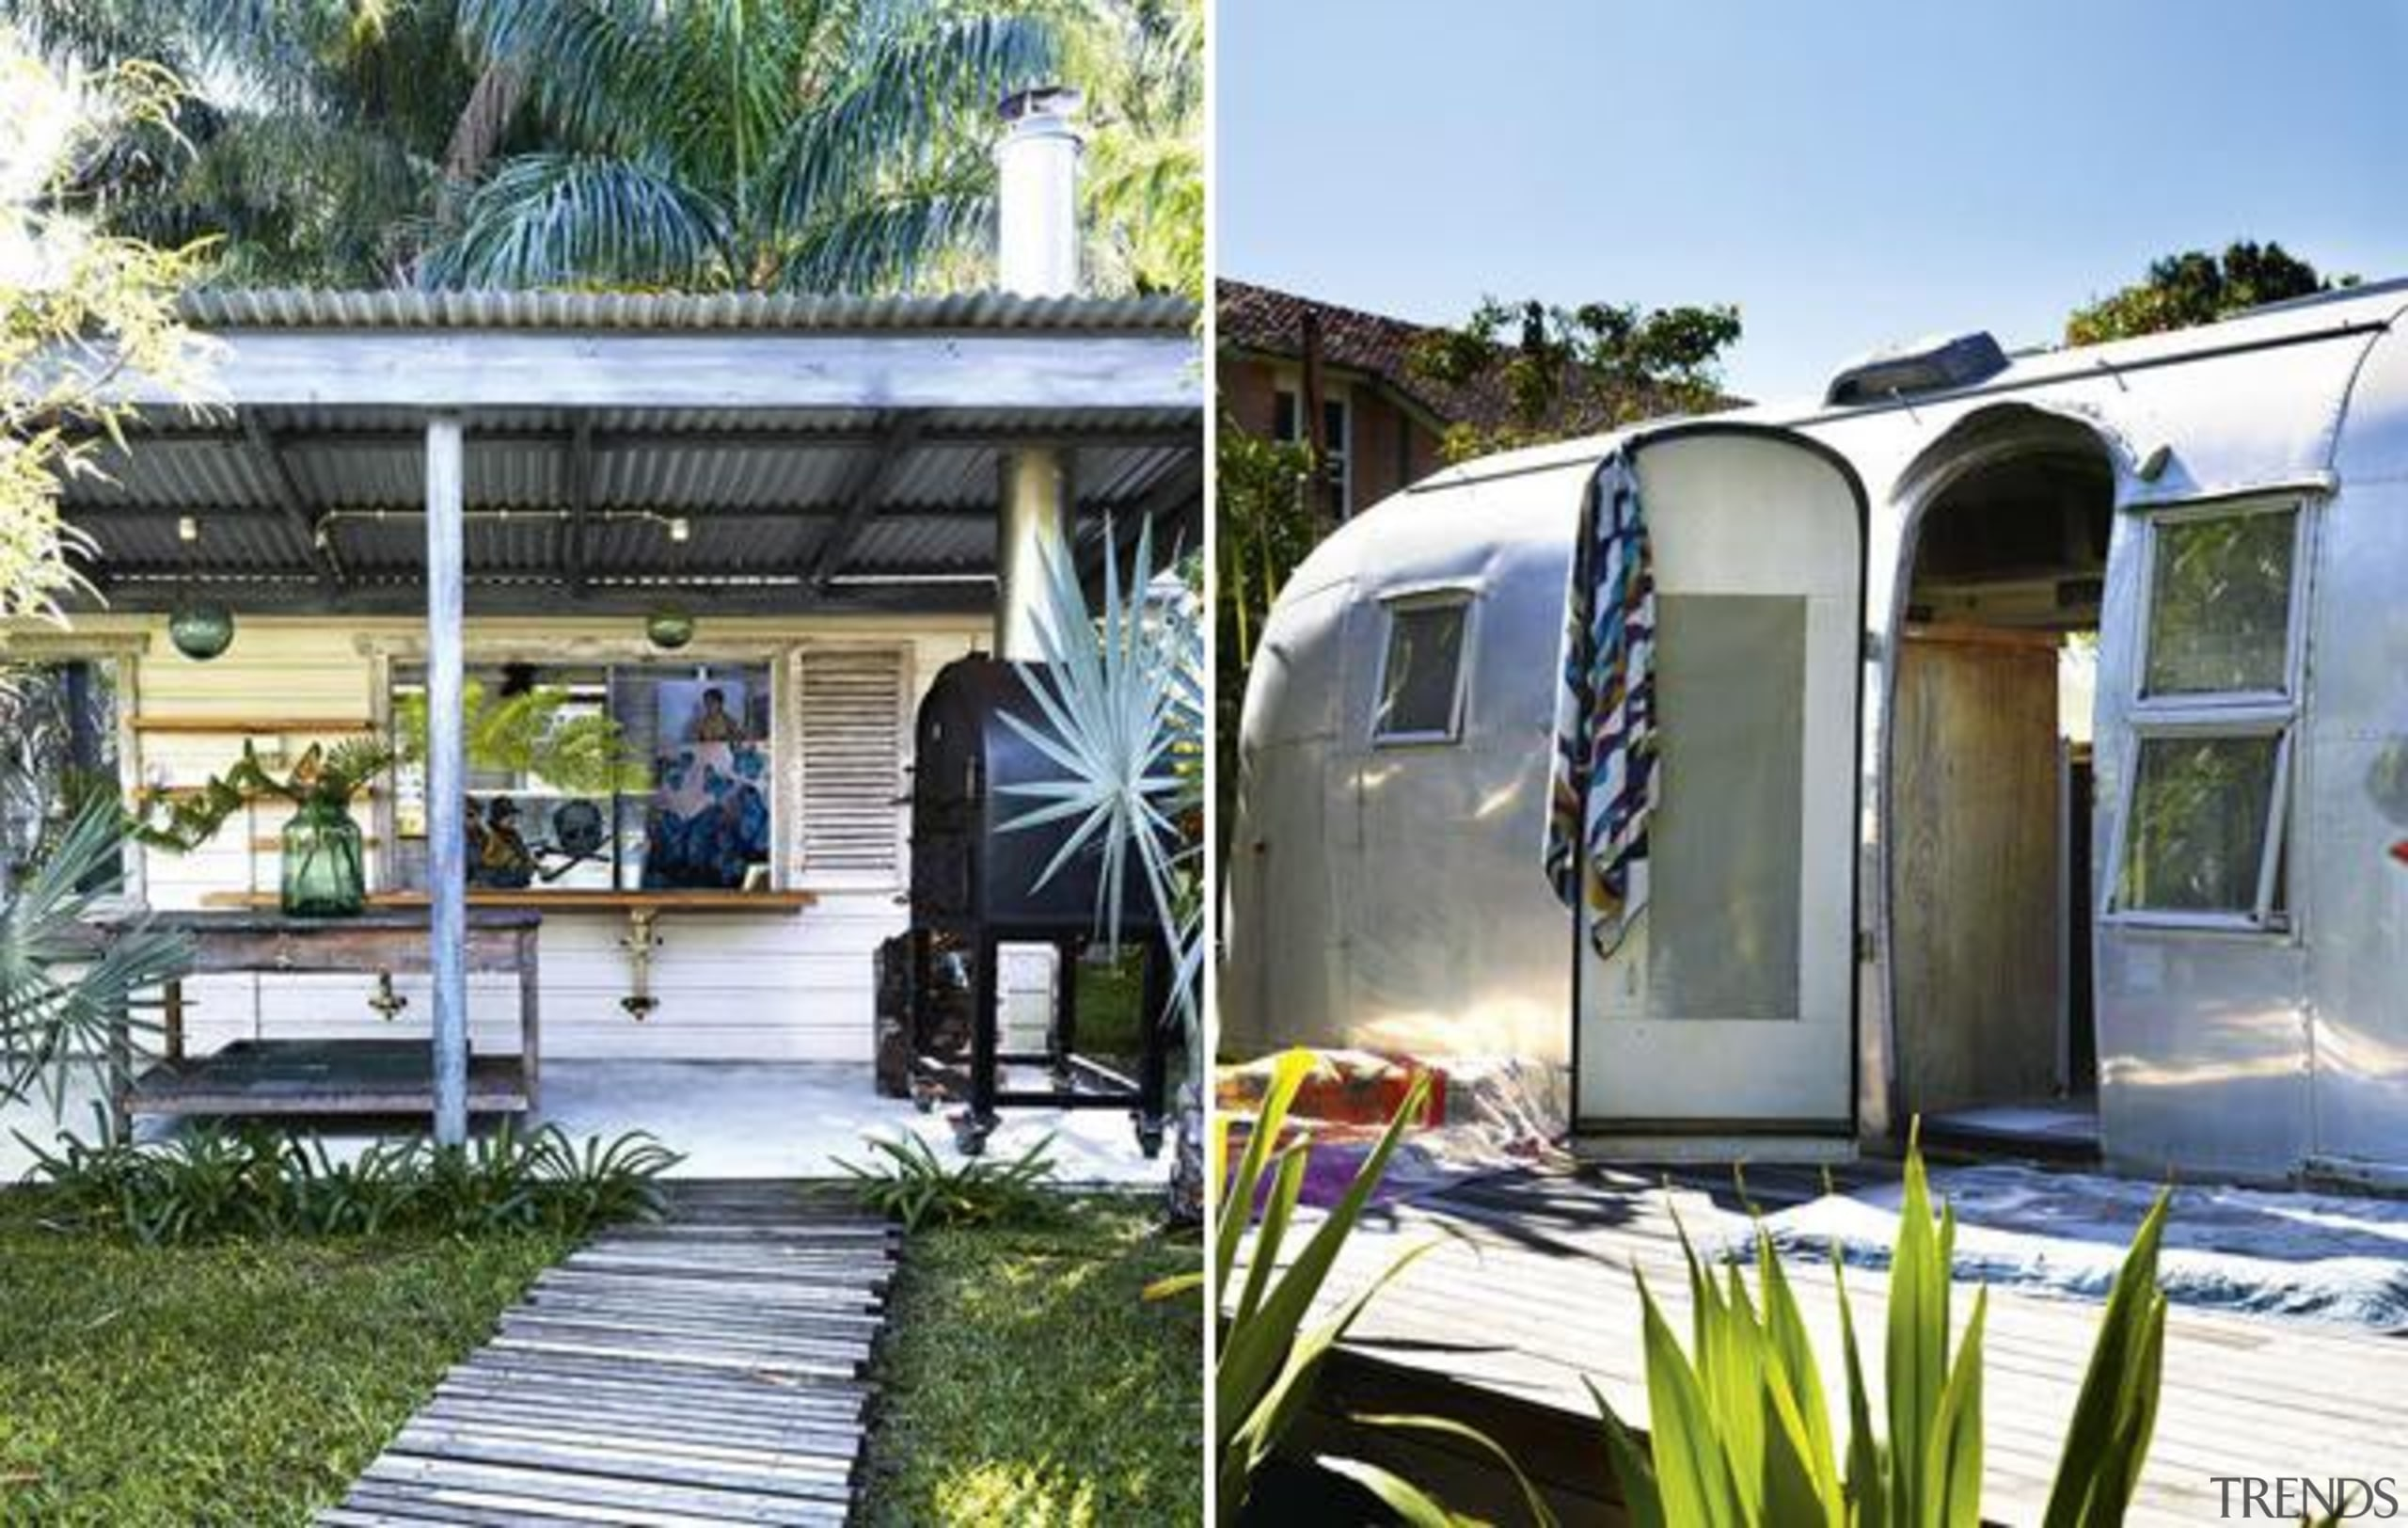 OUTDOOR - car | home | house | car, home, house, plant, shed, travel trailer, vehicle, white